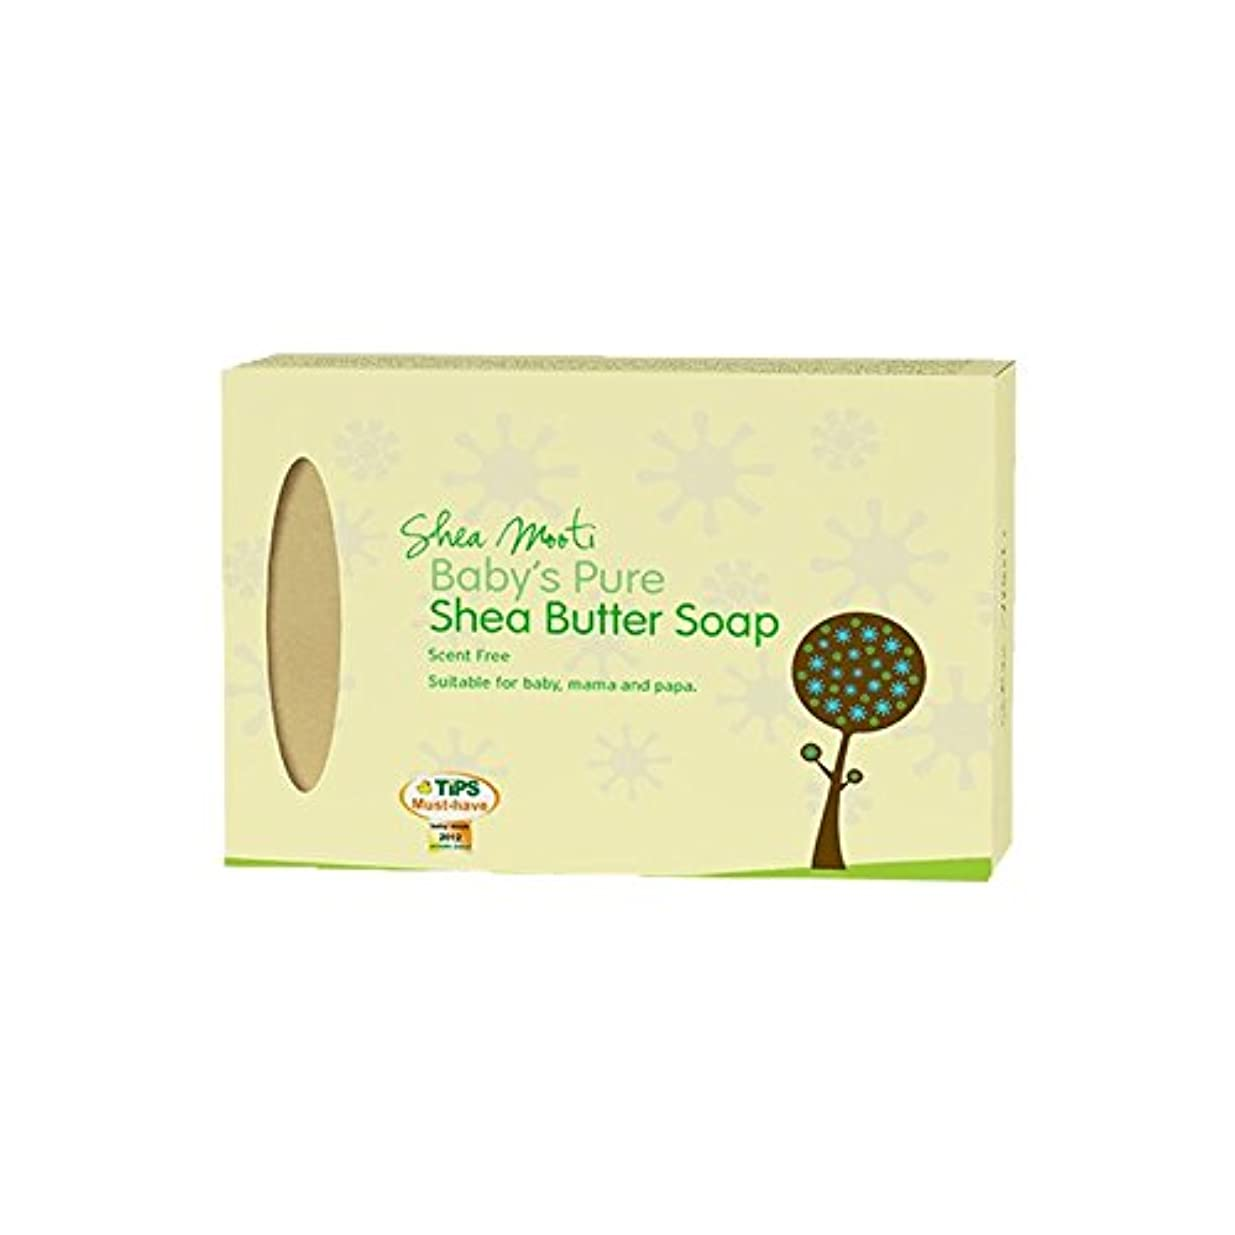 Shea Mooti Baby's Pure Shea Butter Soap Unscented 250ml (Pack of 6) - シアバターMooti赤ちゃんの純粋なシアバターソープ無香250ミリリットル (x6...